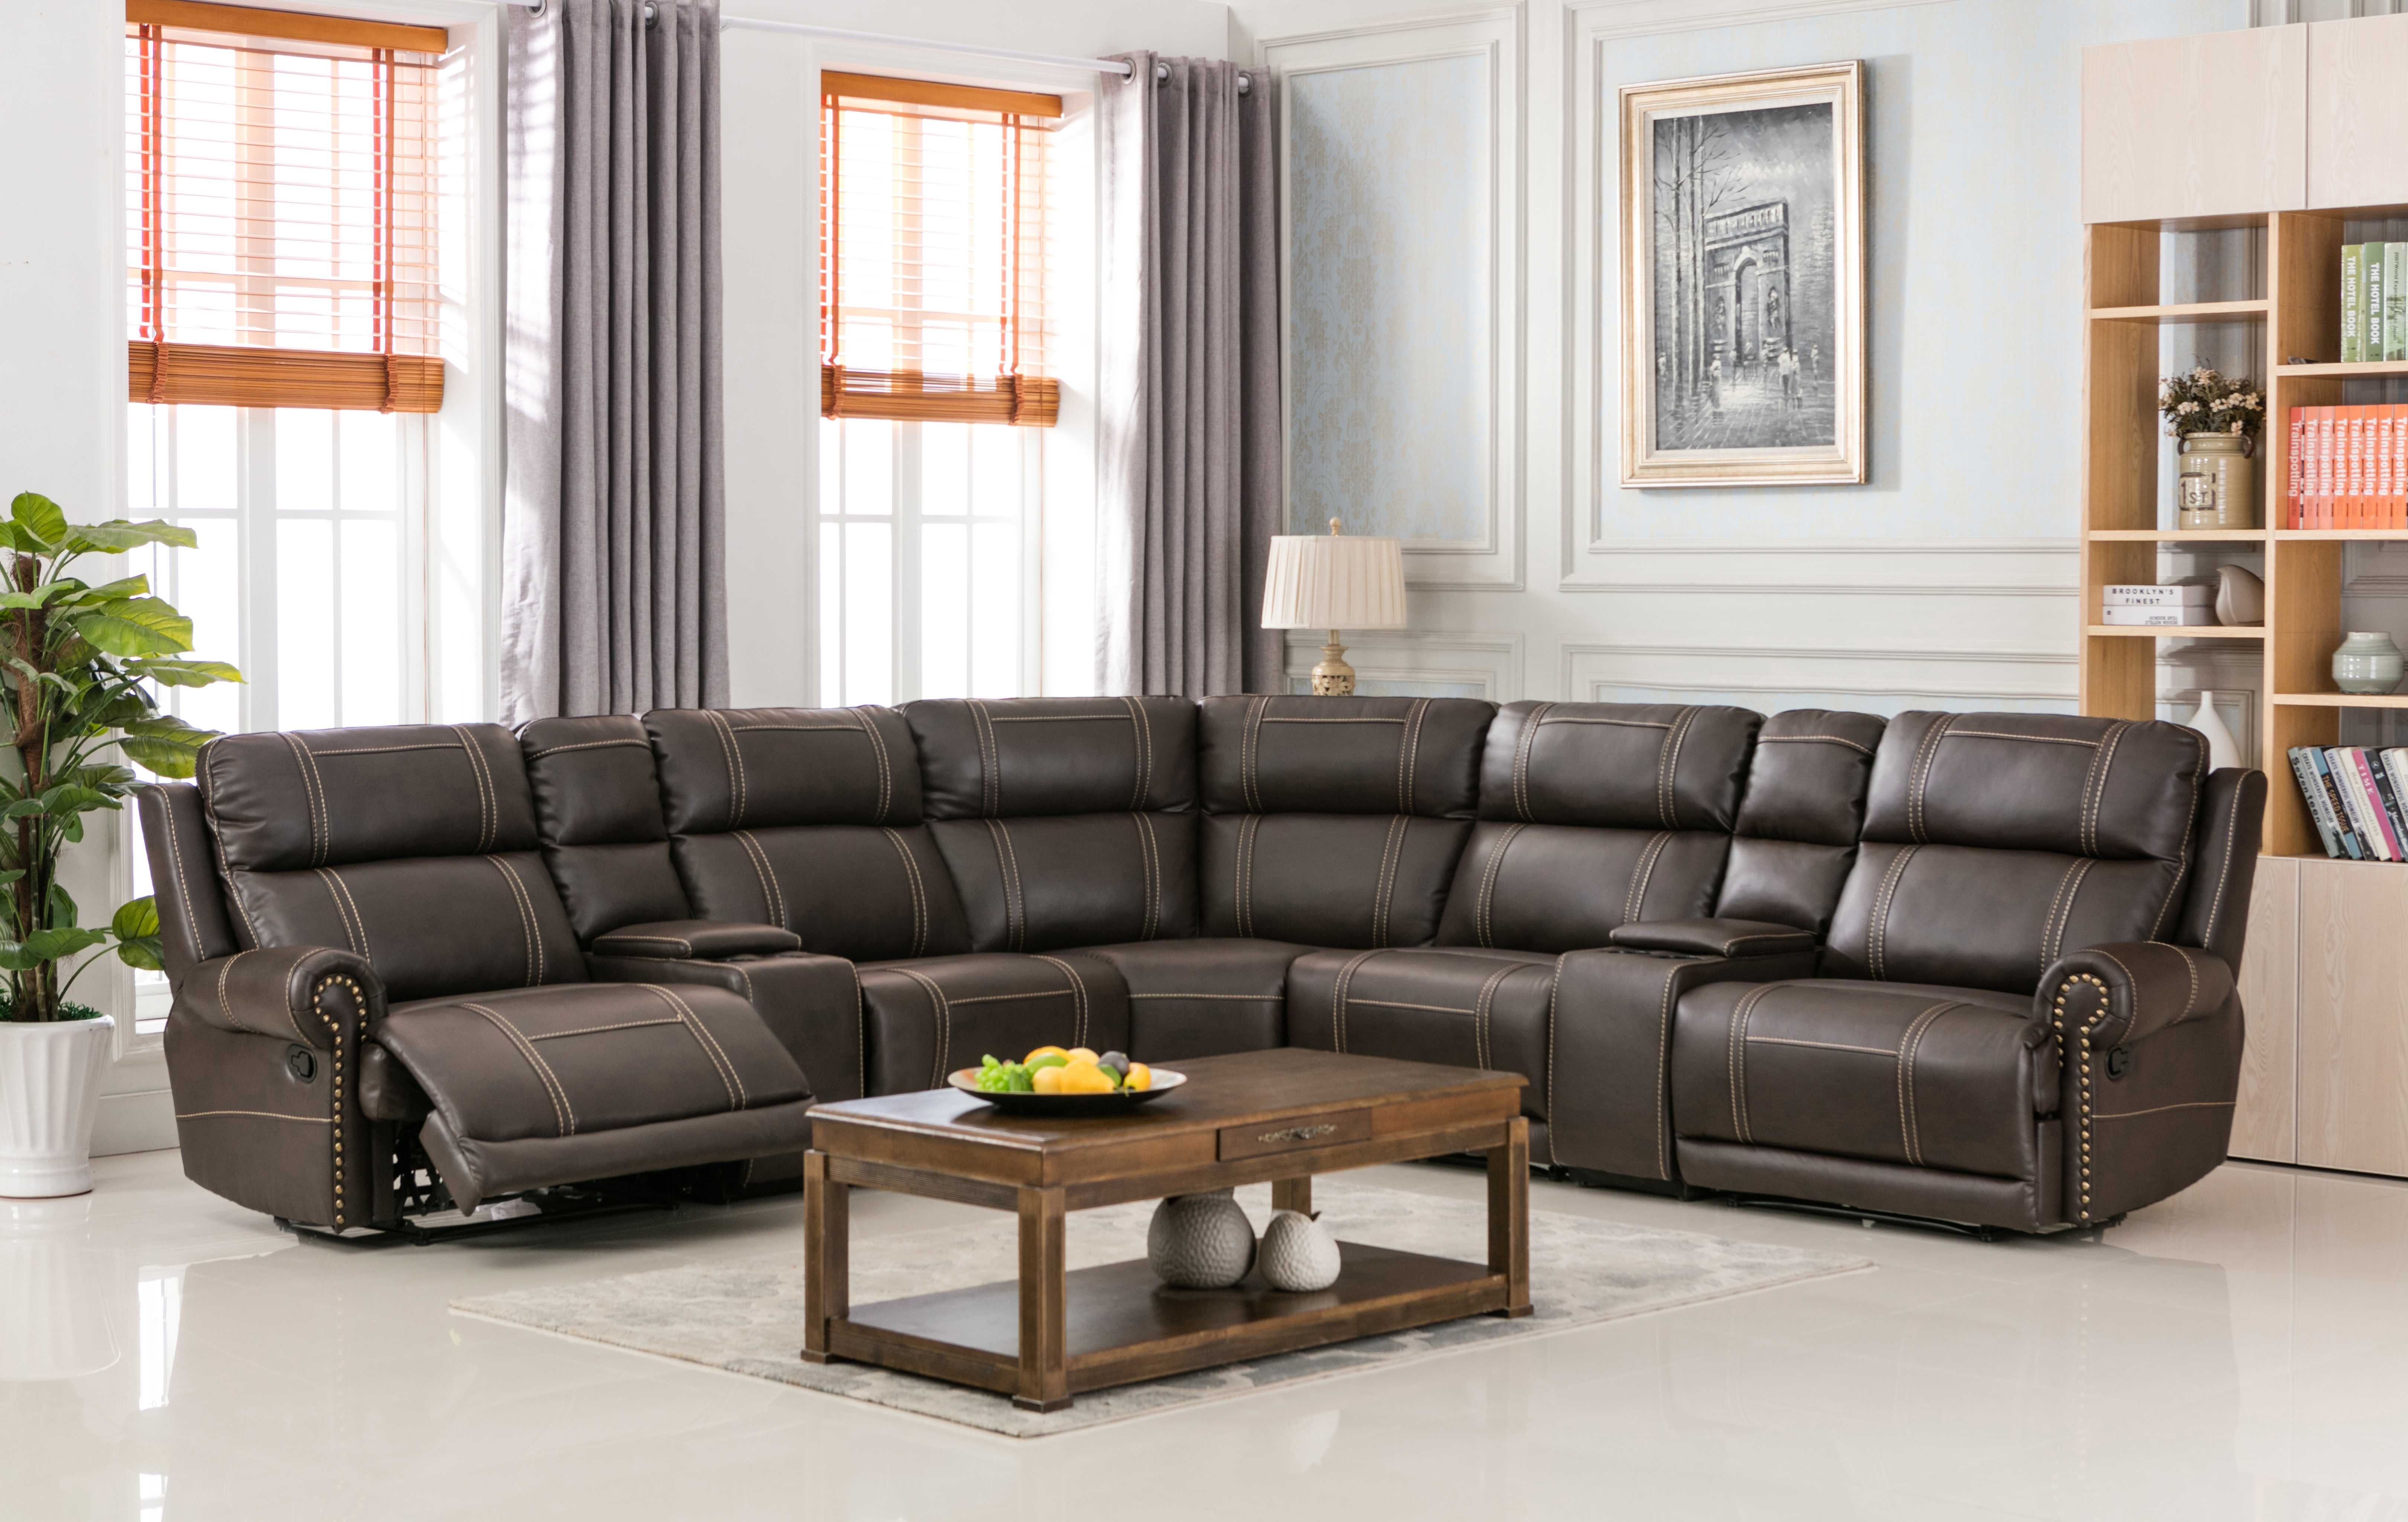 Avatar By Discount Decor Contact Us 011 616 2026 8 Or 081 407 5053 Johannesburg South Africa Lounge Furnit Lounge Suites Cheap Mattress Furniture Prices